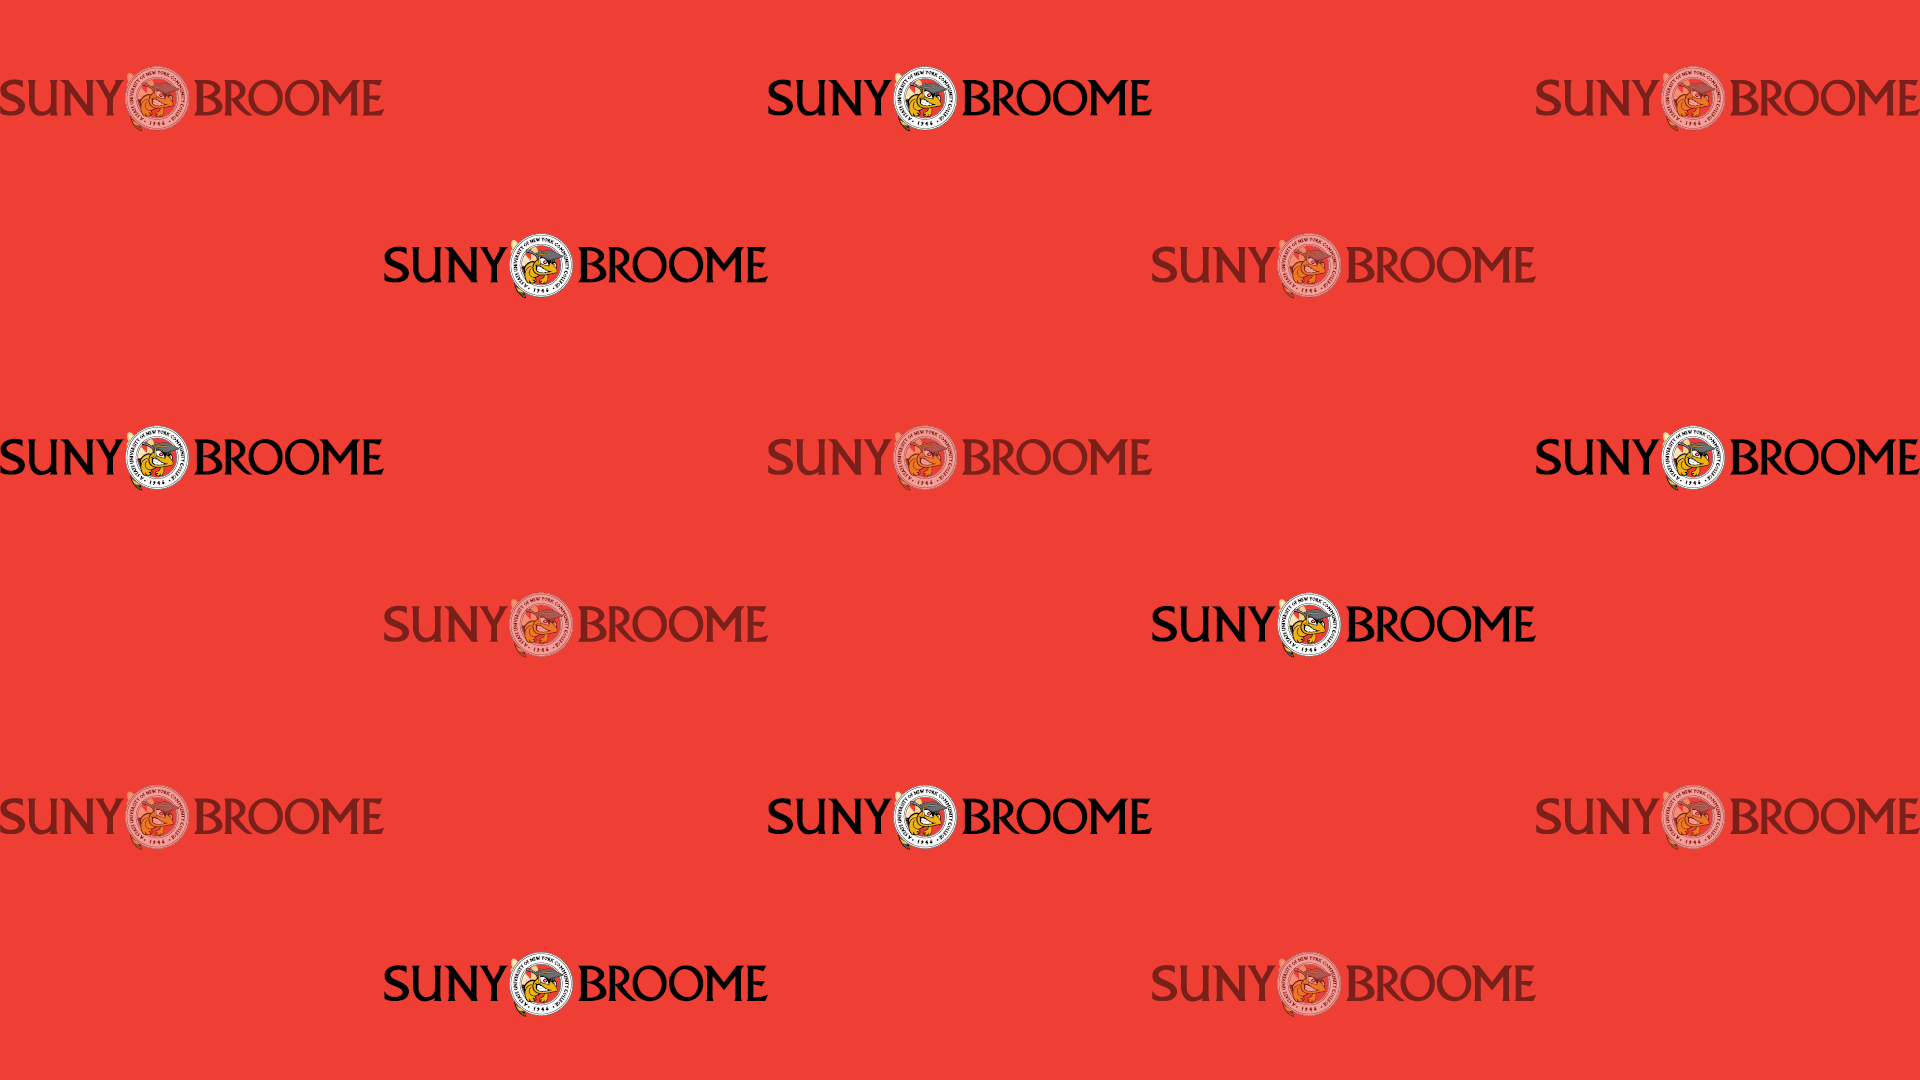 Download Zoom virtual background with black SUNY Broome logo tiled on red background (jpg)